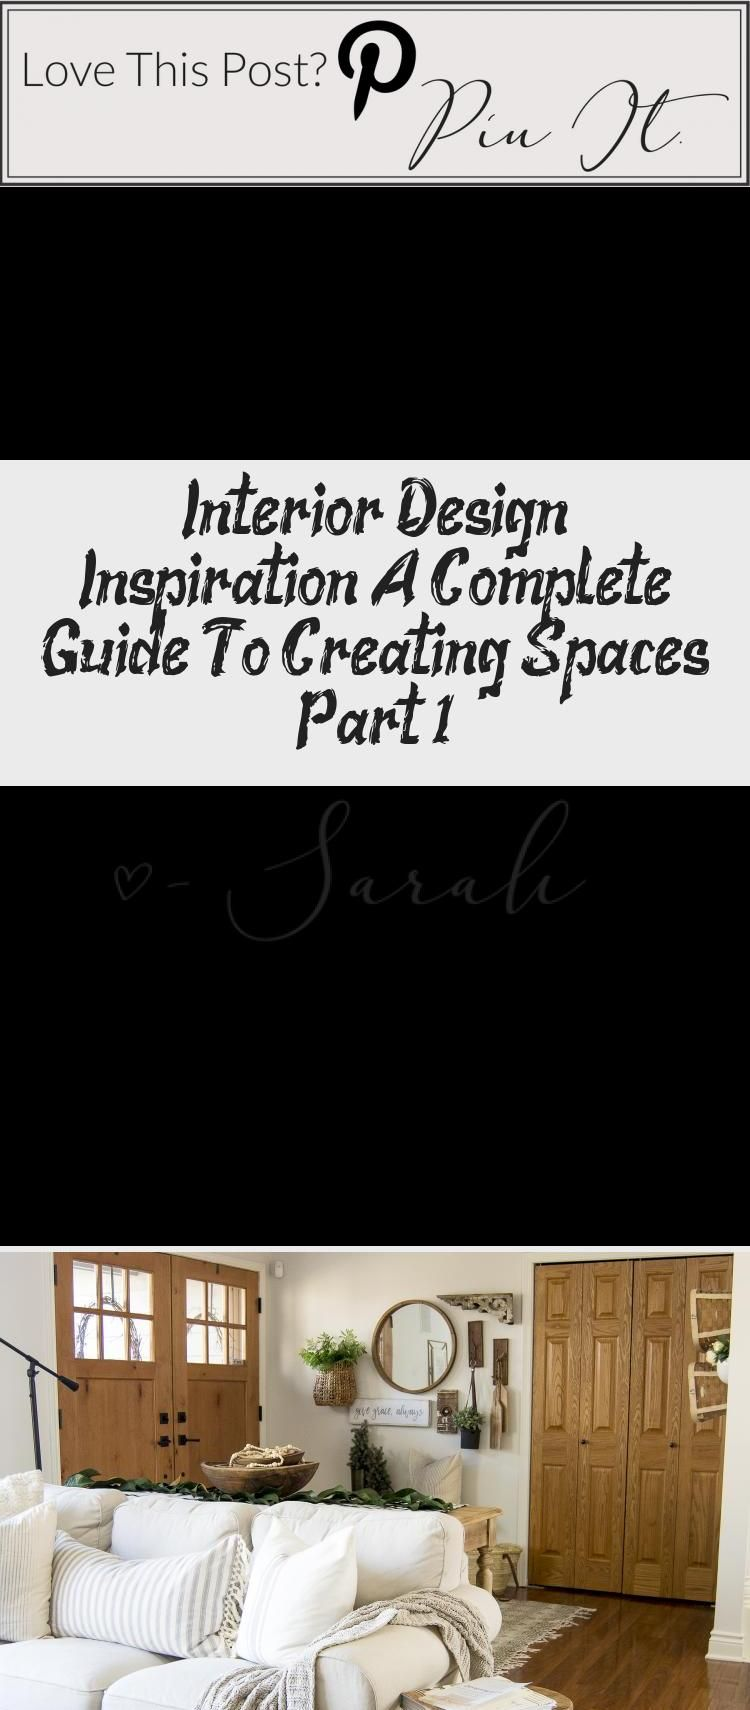 Do you struggle to take a space from dream to reality? Join me for a complete guide to creating spaces you love, starting with interior design inspiration! #fromhousetohaven #interiordesigninspiration #homedecor #interiordesign #interiordesignEclectic #interiordesignBohemian #Traditionalinteriordesign #interiordesignBathroom #interiordesignLivingRoom